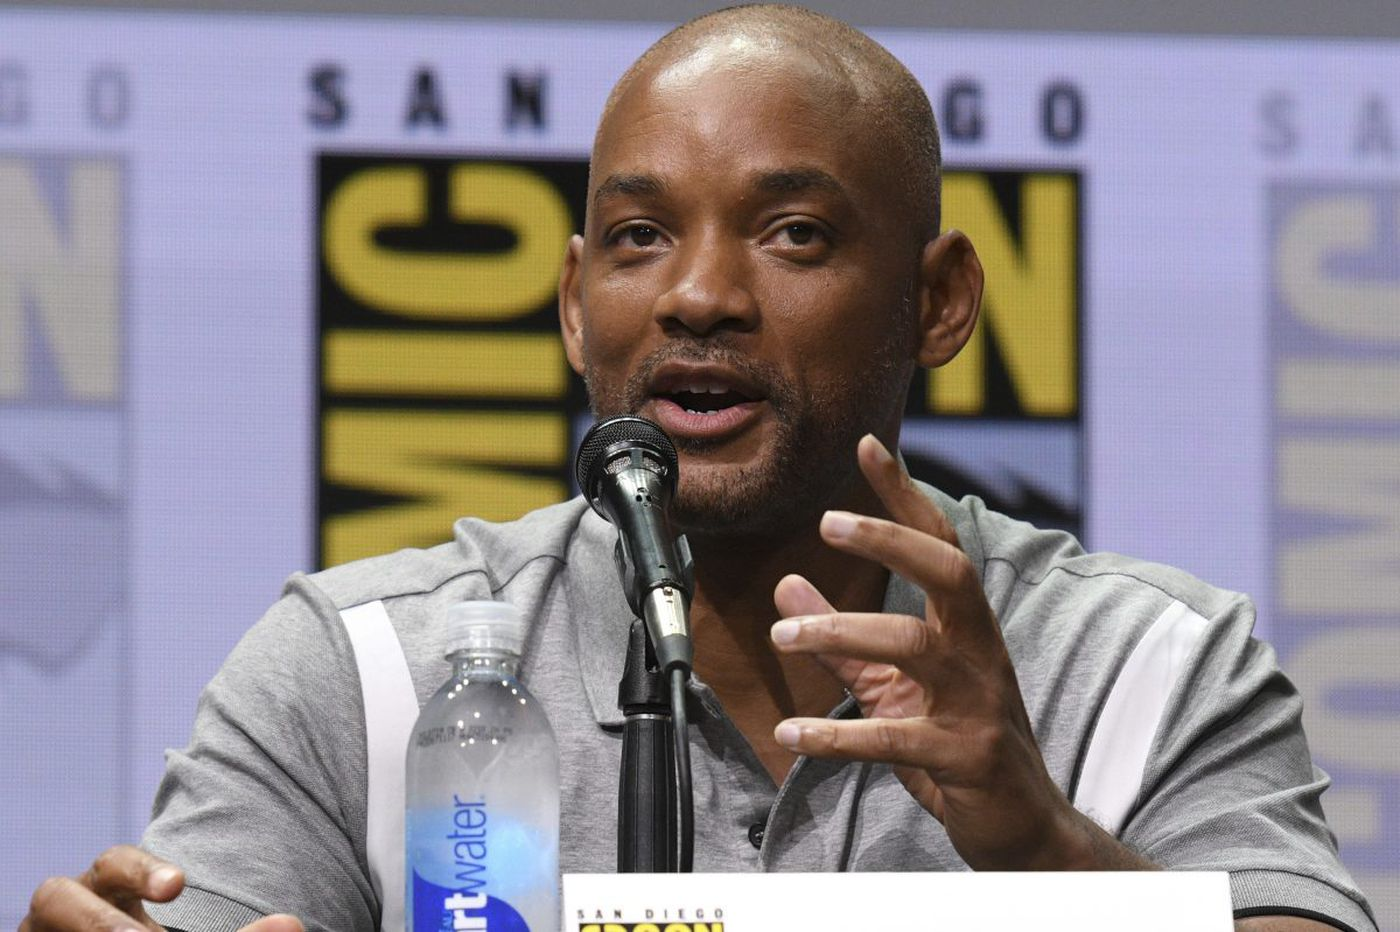 Will Smith says he 'found someone to be racist against' in upcoming Netflix movie 'Bright'